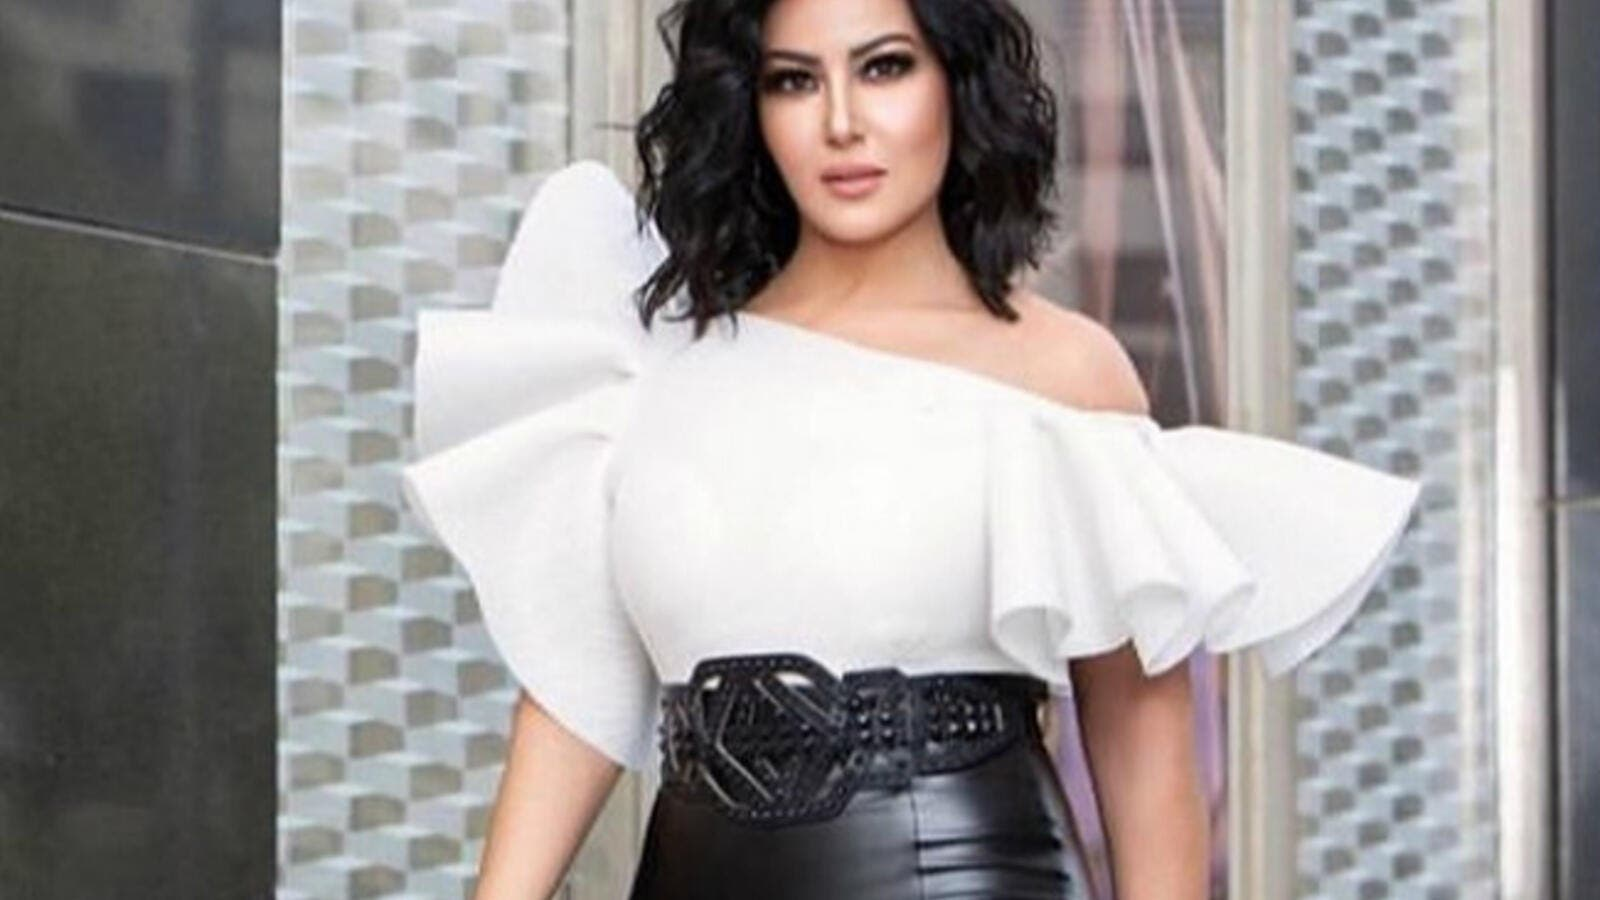 Egyptian actress Sumaya al-Khashab said that the marriage took her away from work a bit. (Source: somaia elkhashab - Instagram)